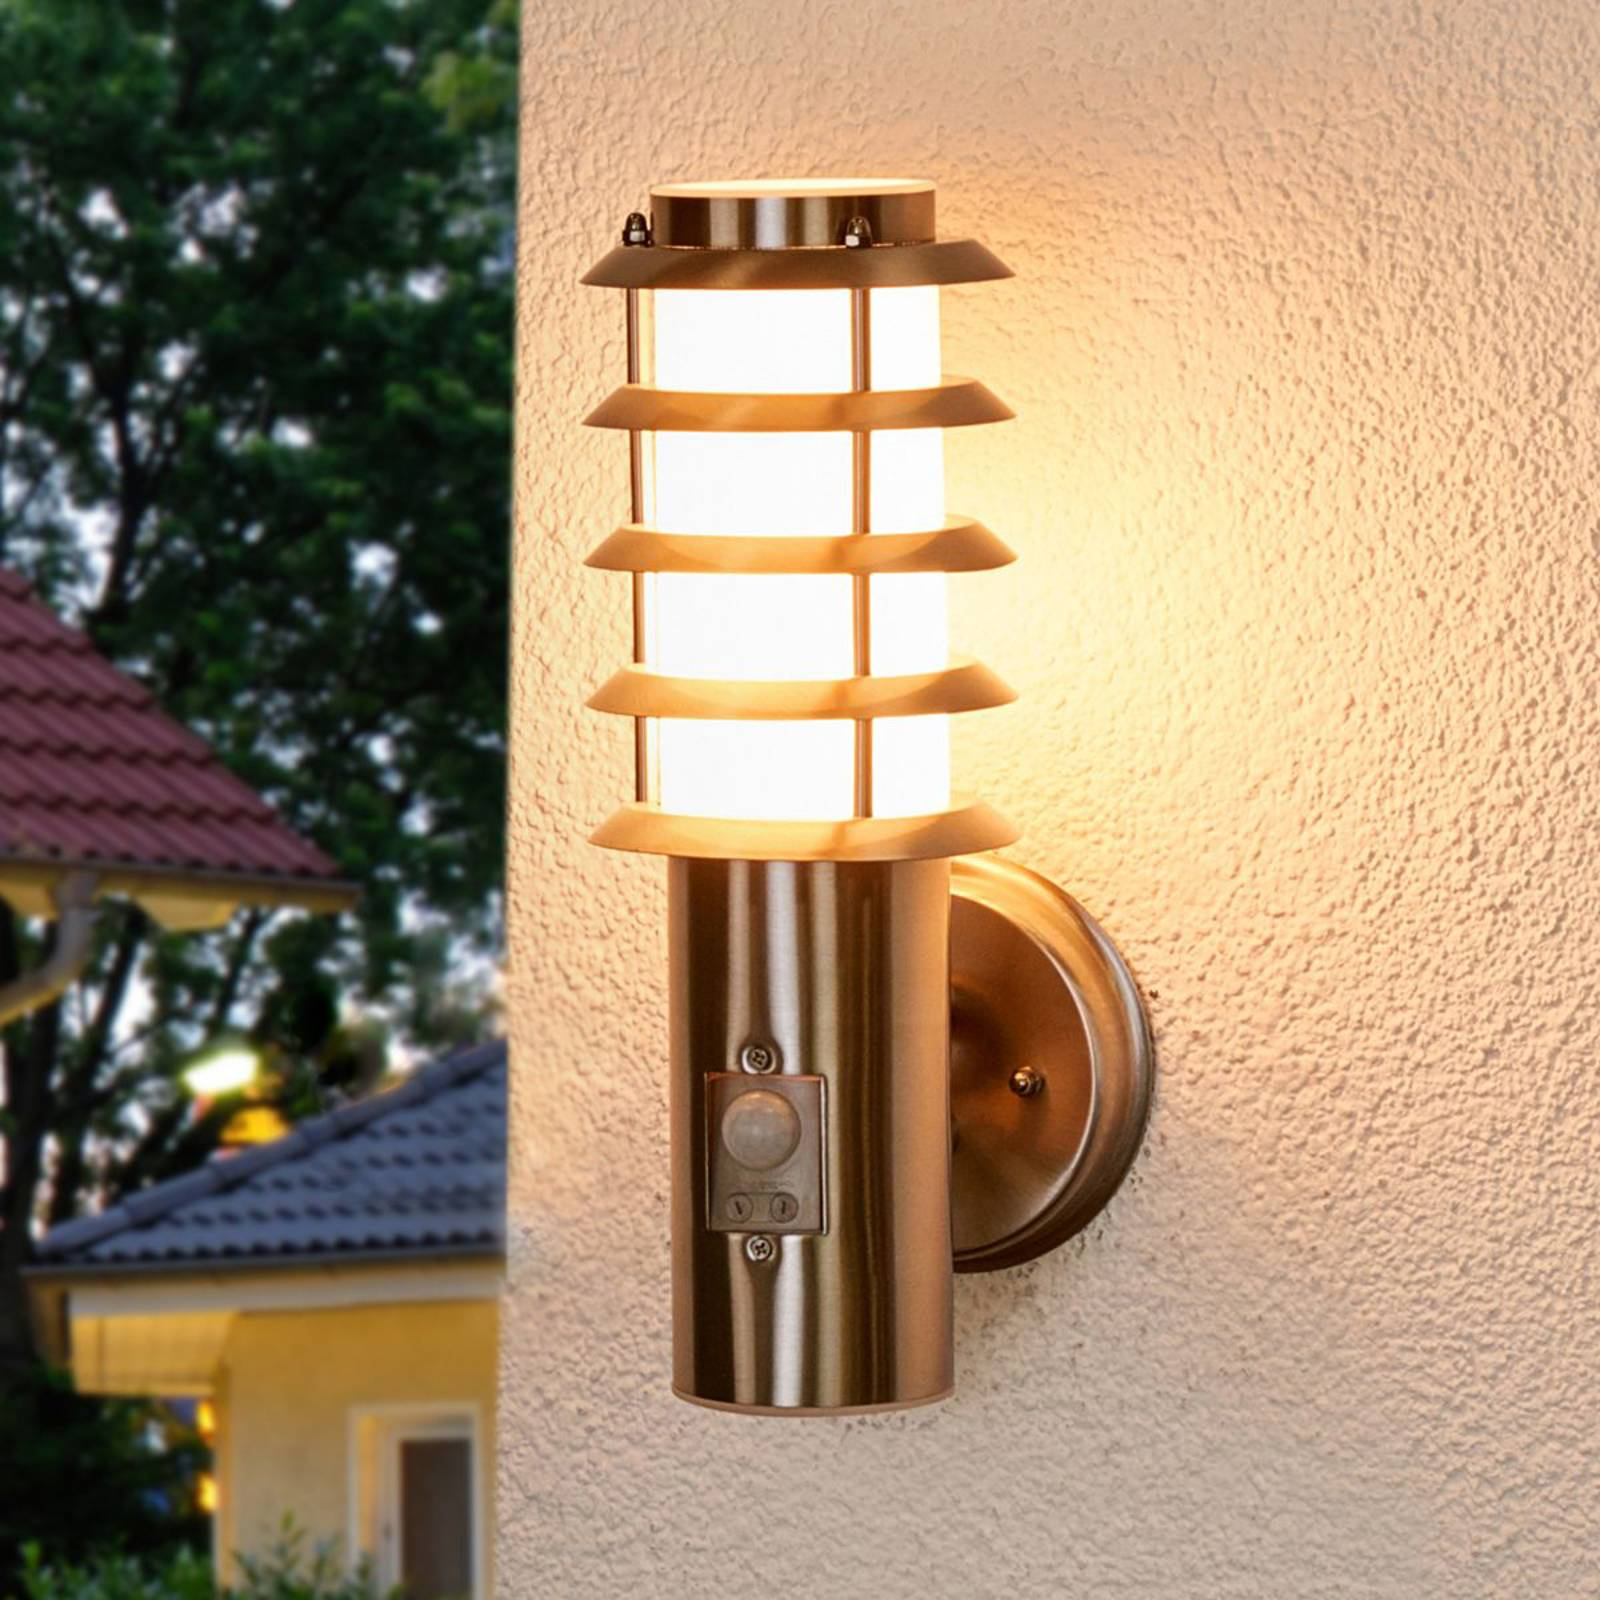 Selina - sensor outdoor wall light with a grid from Lampenwelt.com